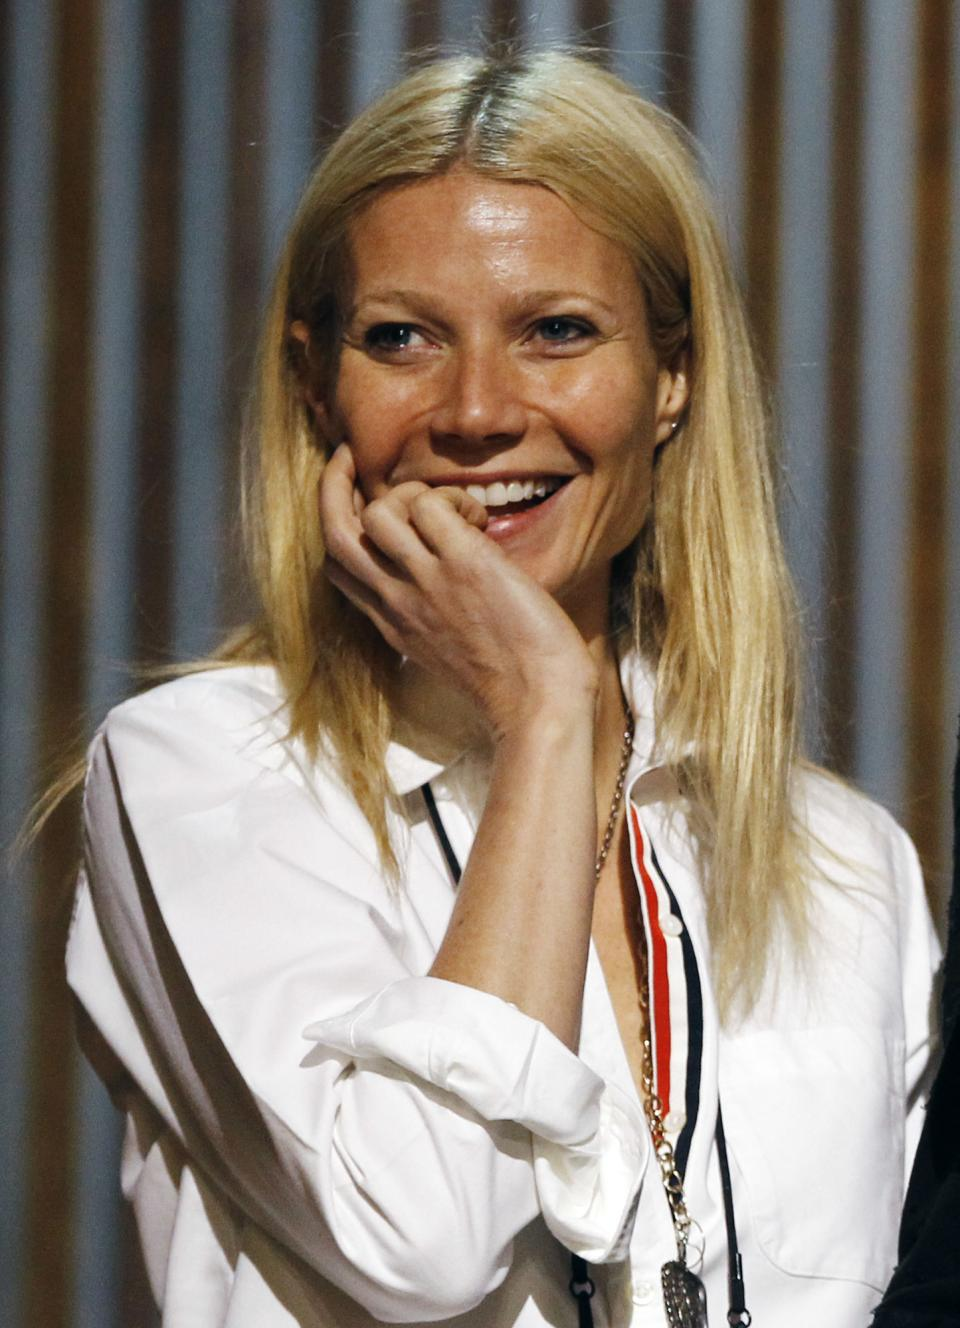 Gwyneth Paltrow rehearses for Sunday's 84th Academy Awards Saturday, Feb 25, 2012 in Los Angeles. (AP Photo/Chris Carlson)